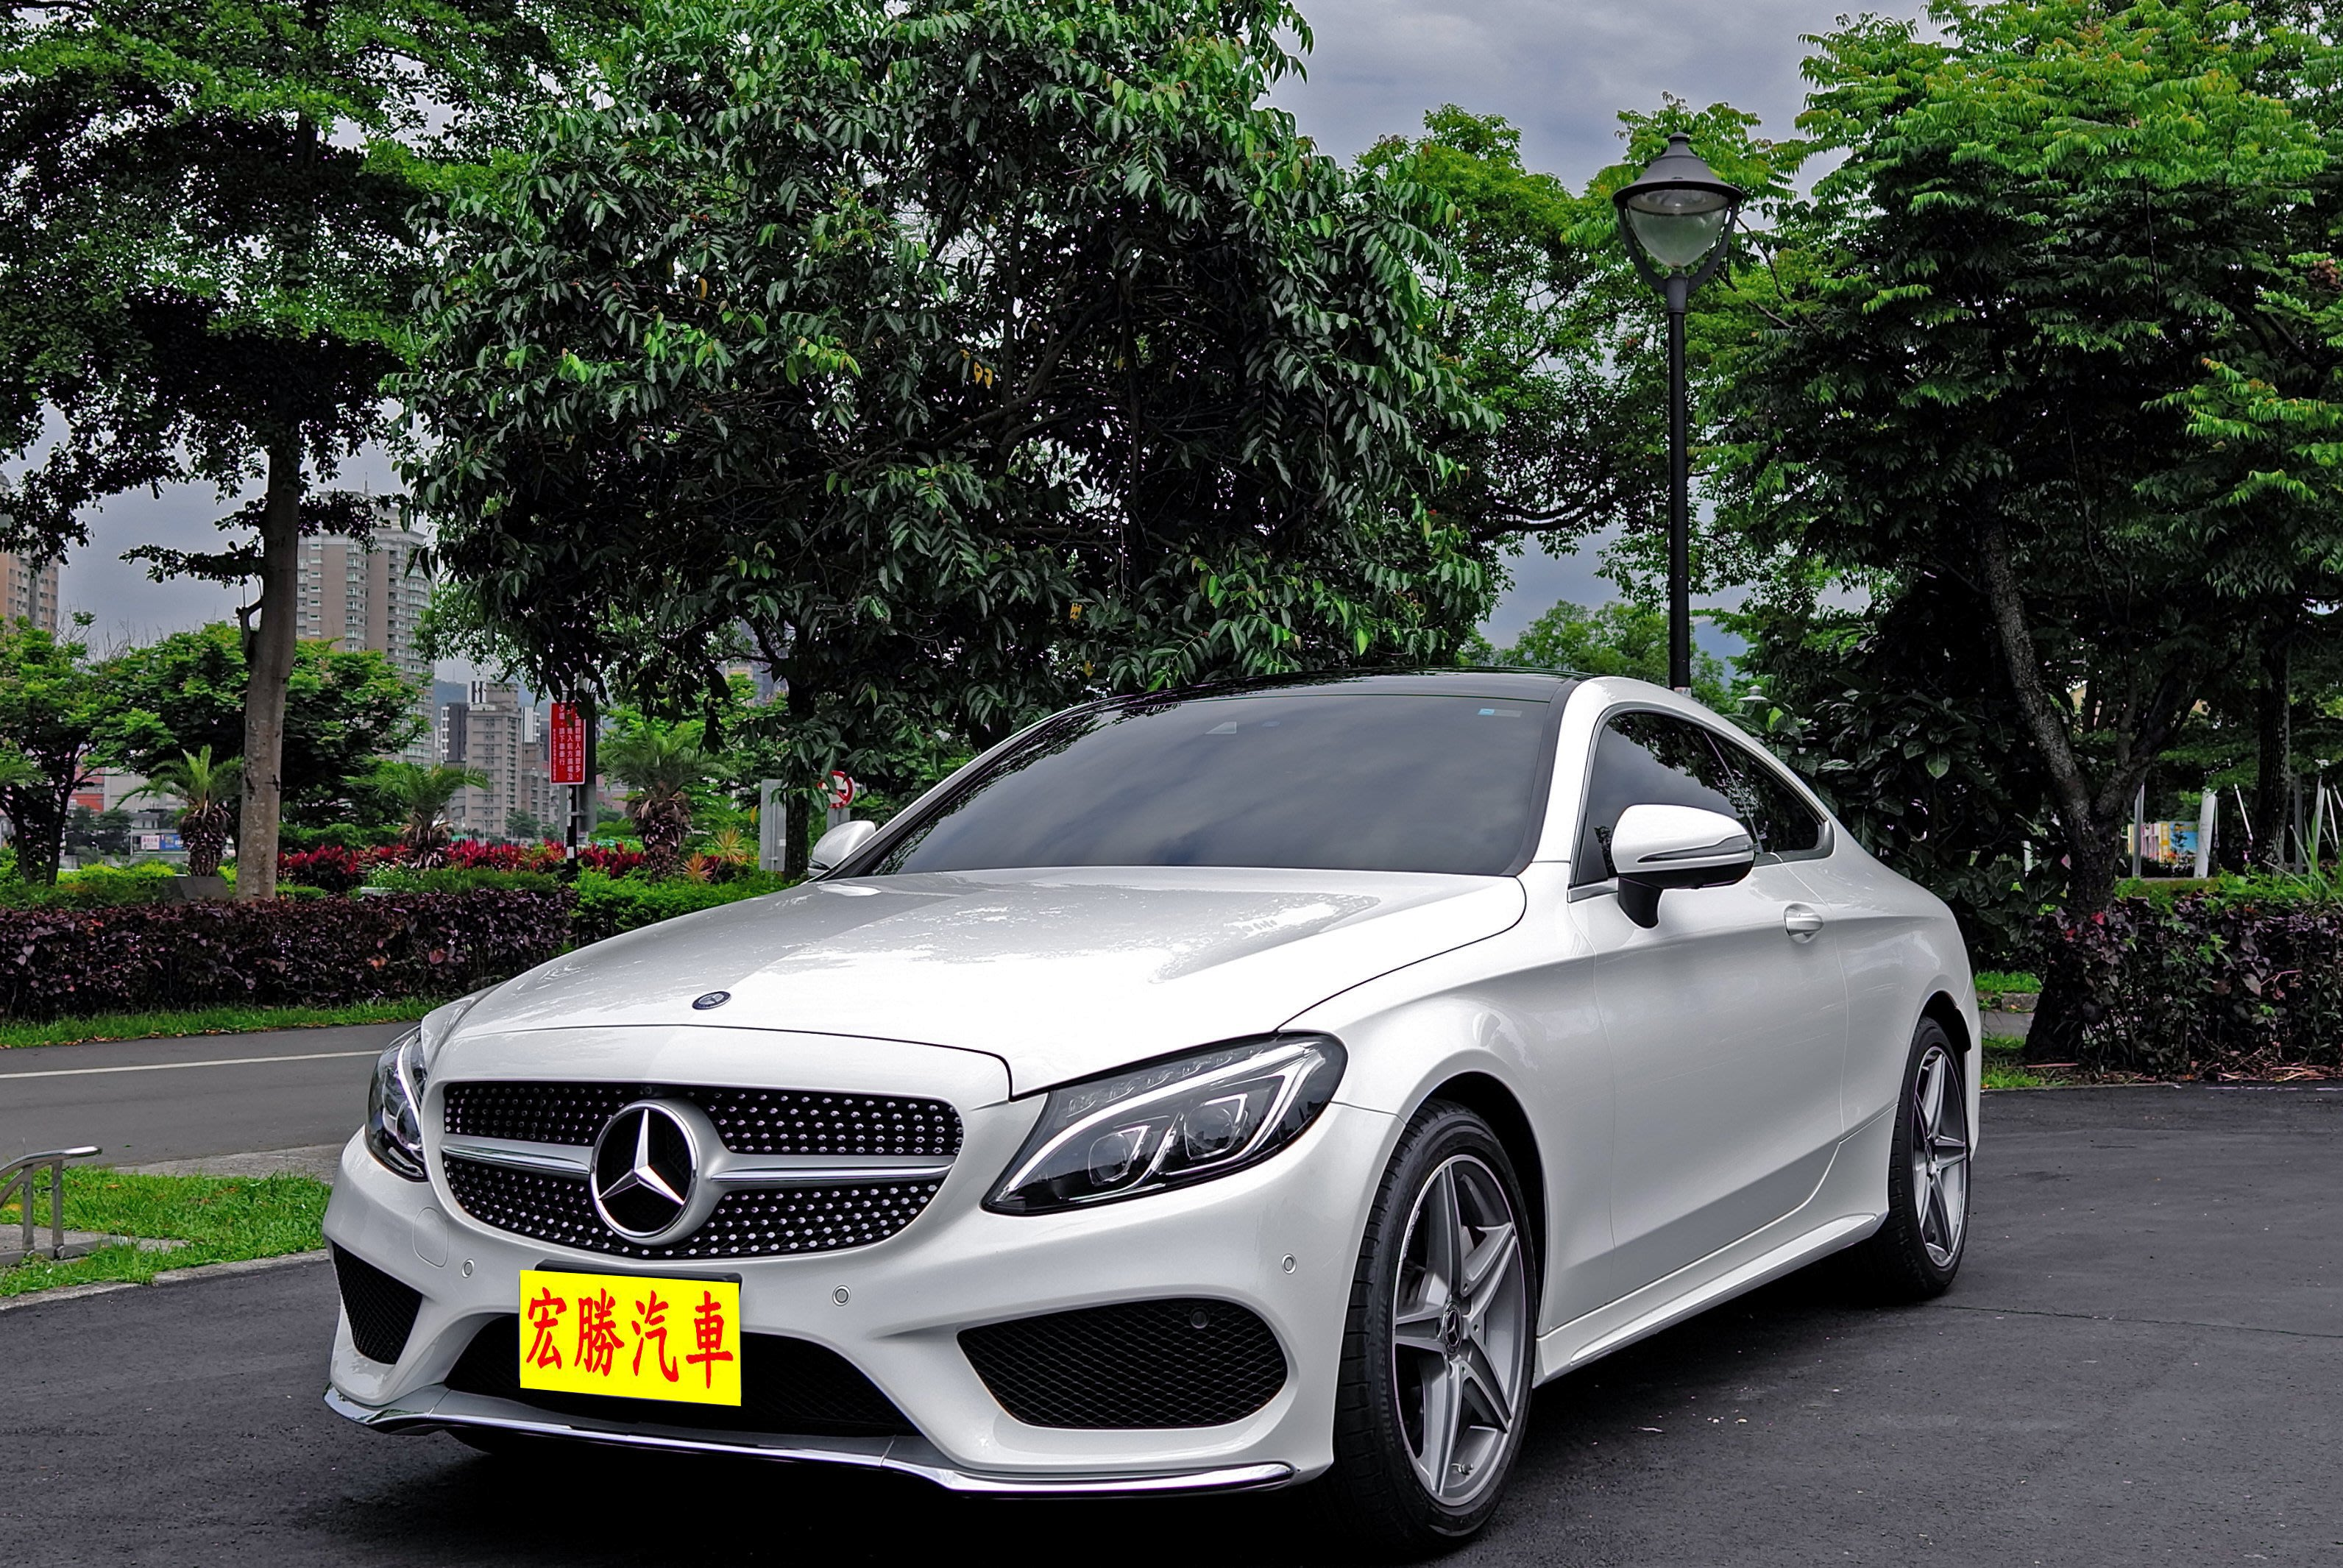 2017 M-benz C-class coupe